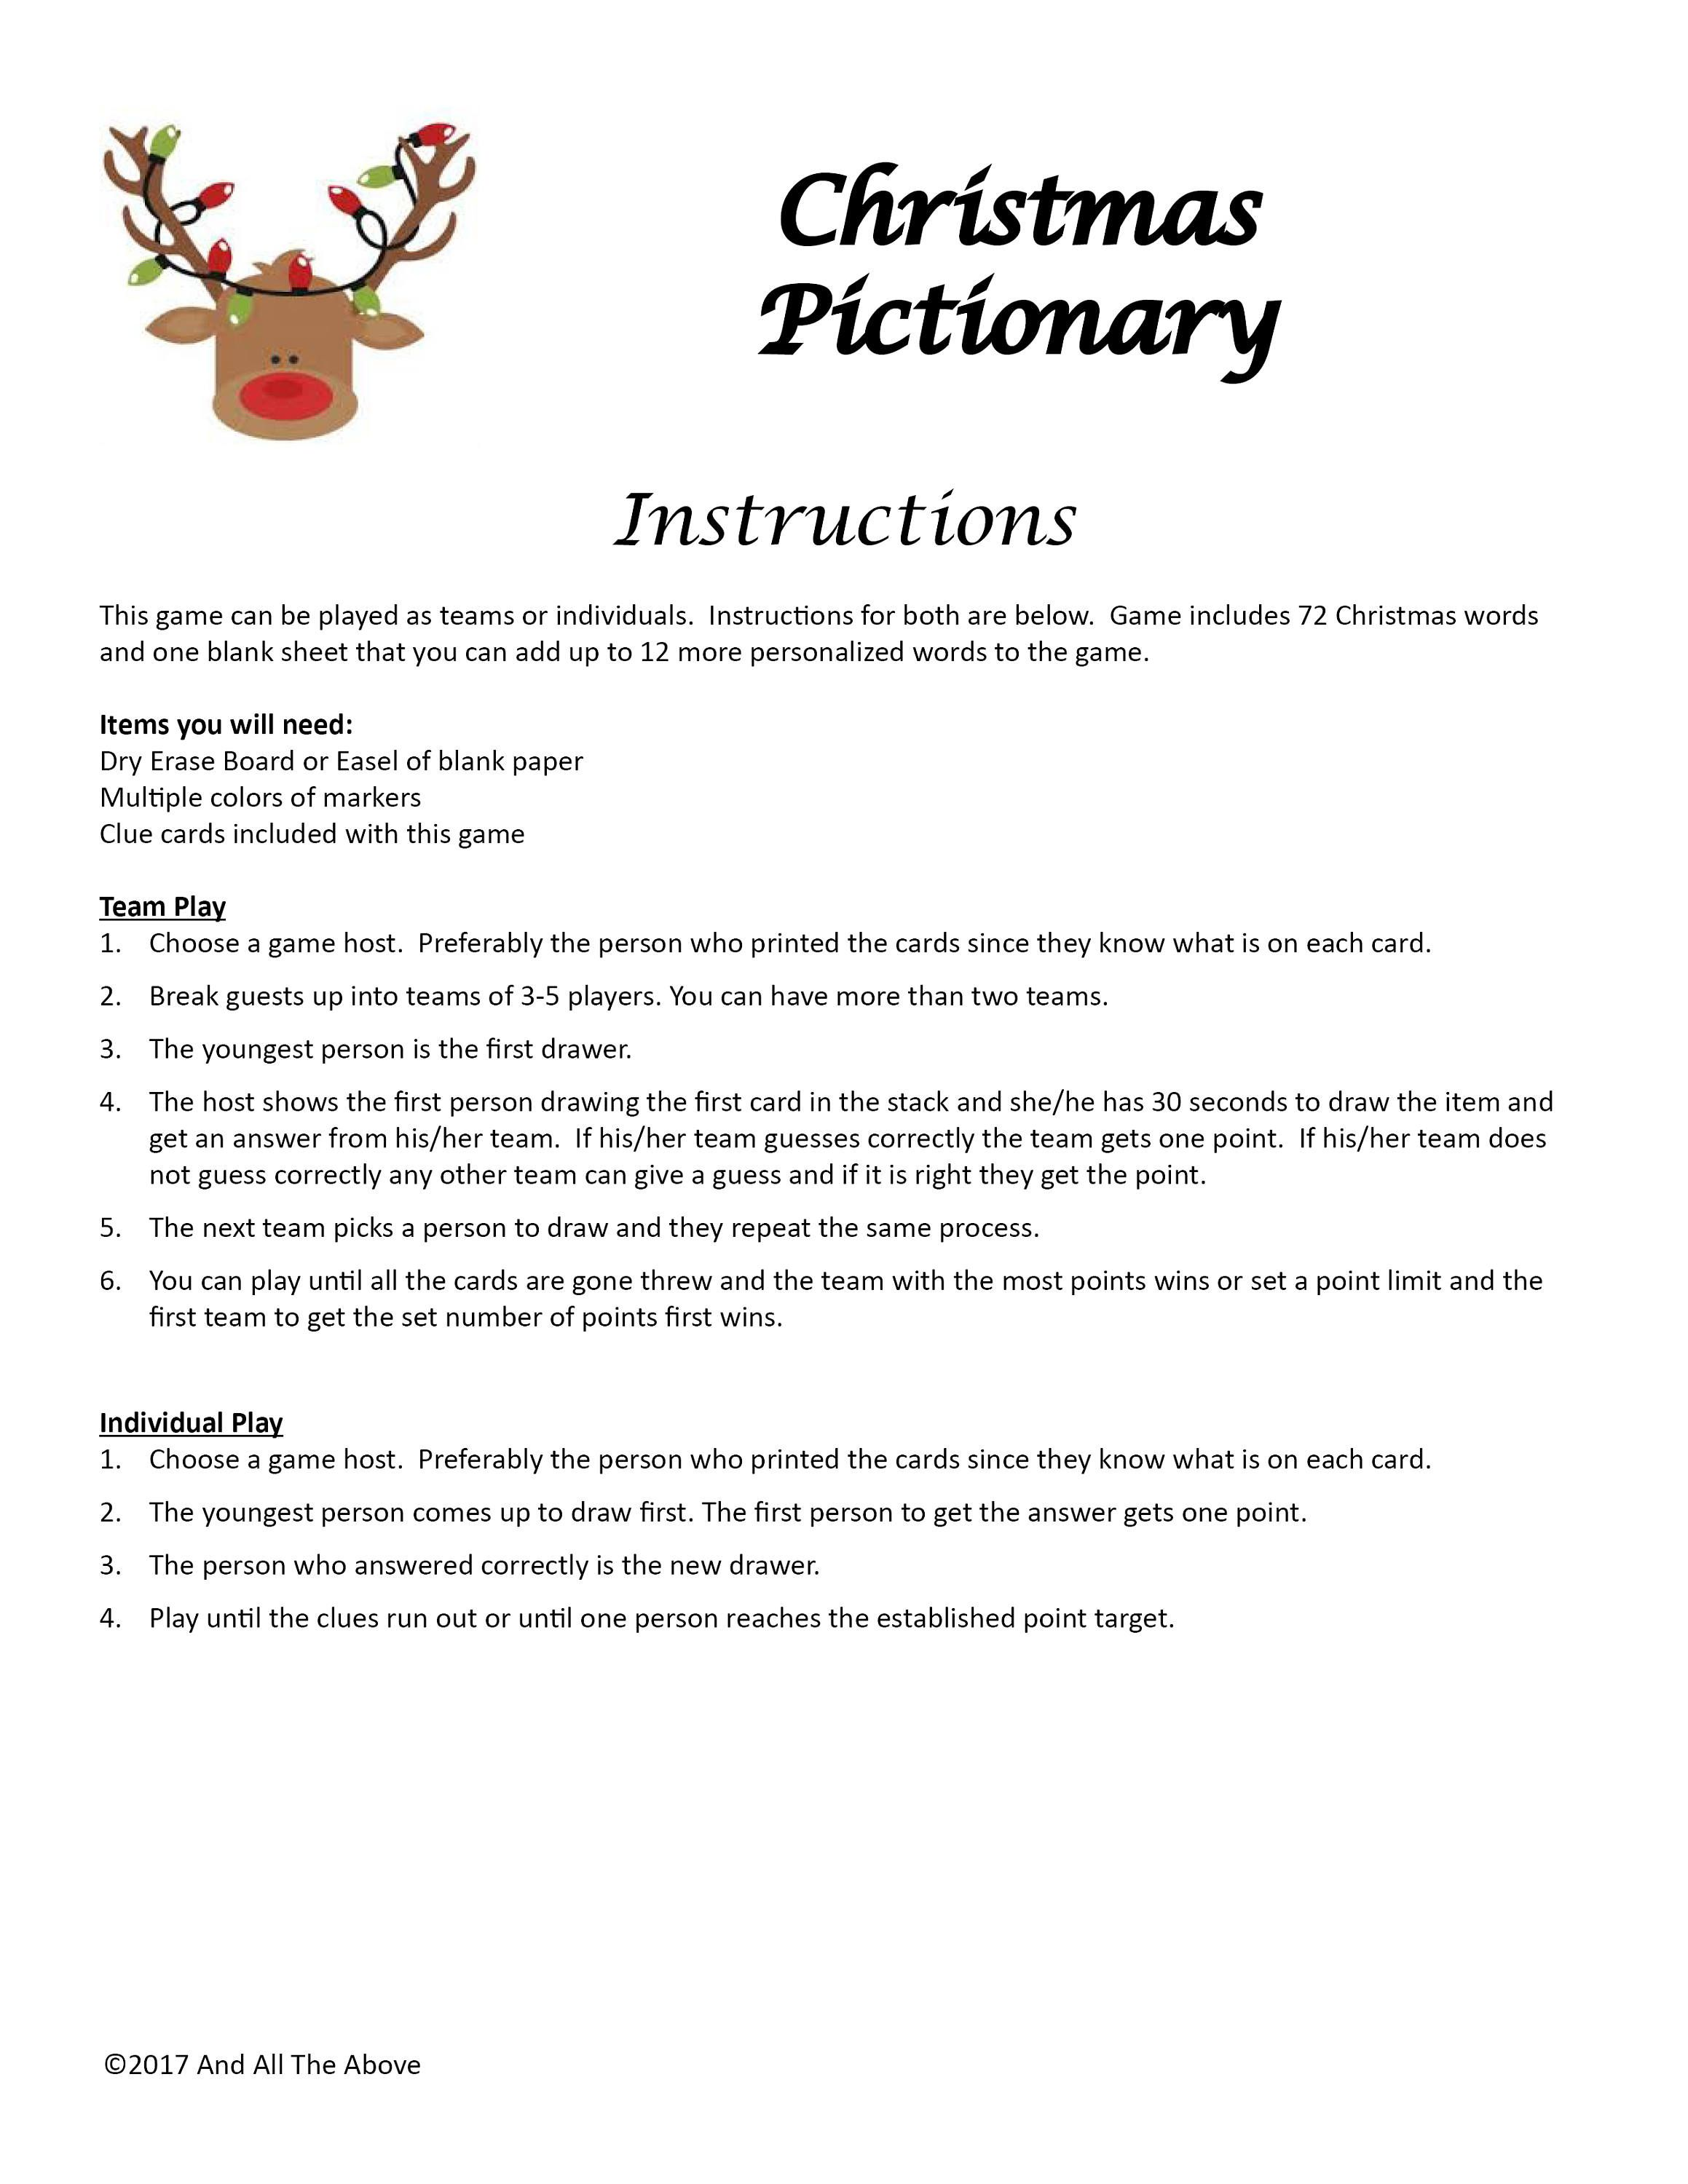 Christmas Pictionary DIGITAL DOWNLOAD, Drawing Game, Christmas Party ...